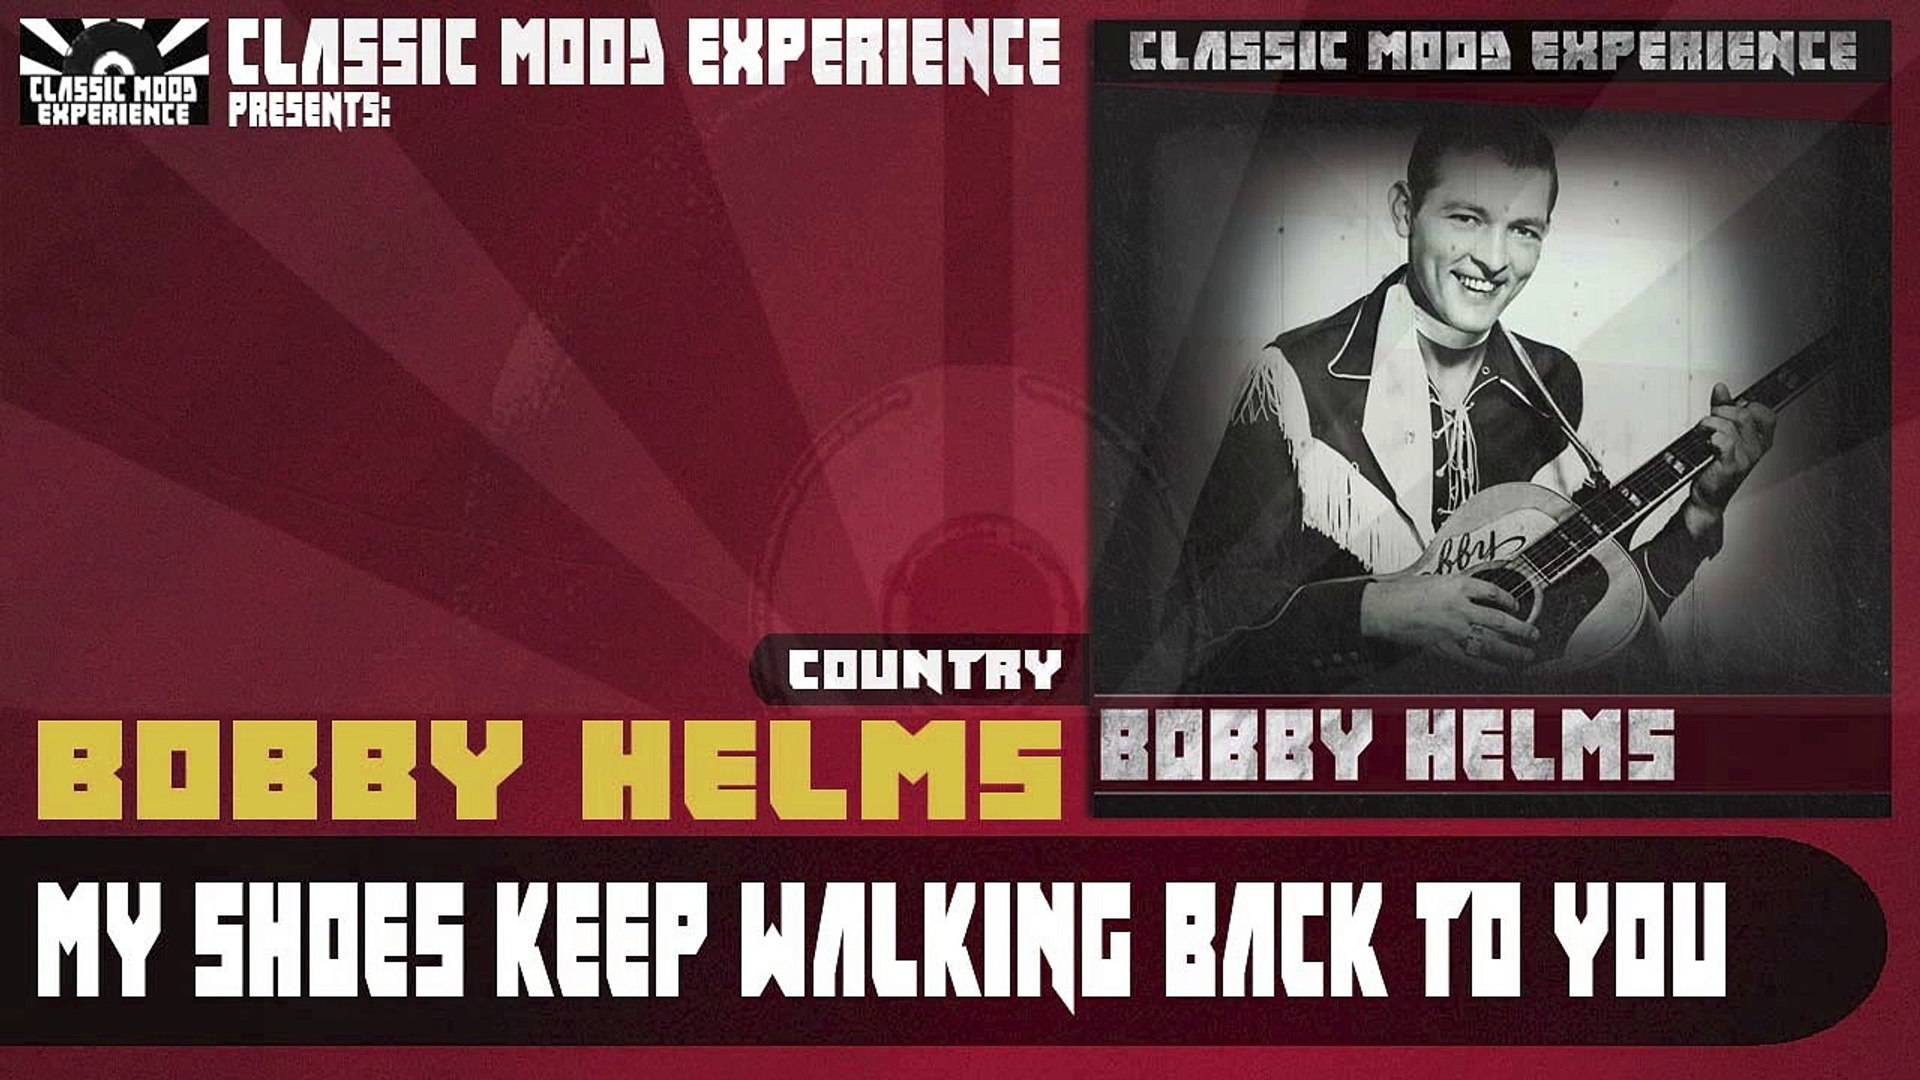 Bobby Helms - My Shoes Keep Walking Back to You (1957)